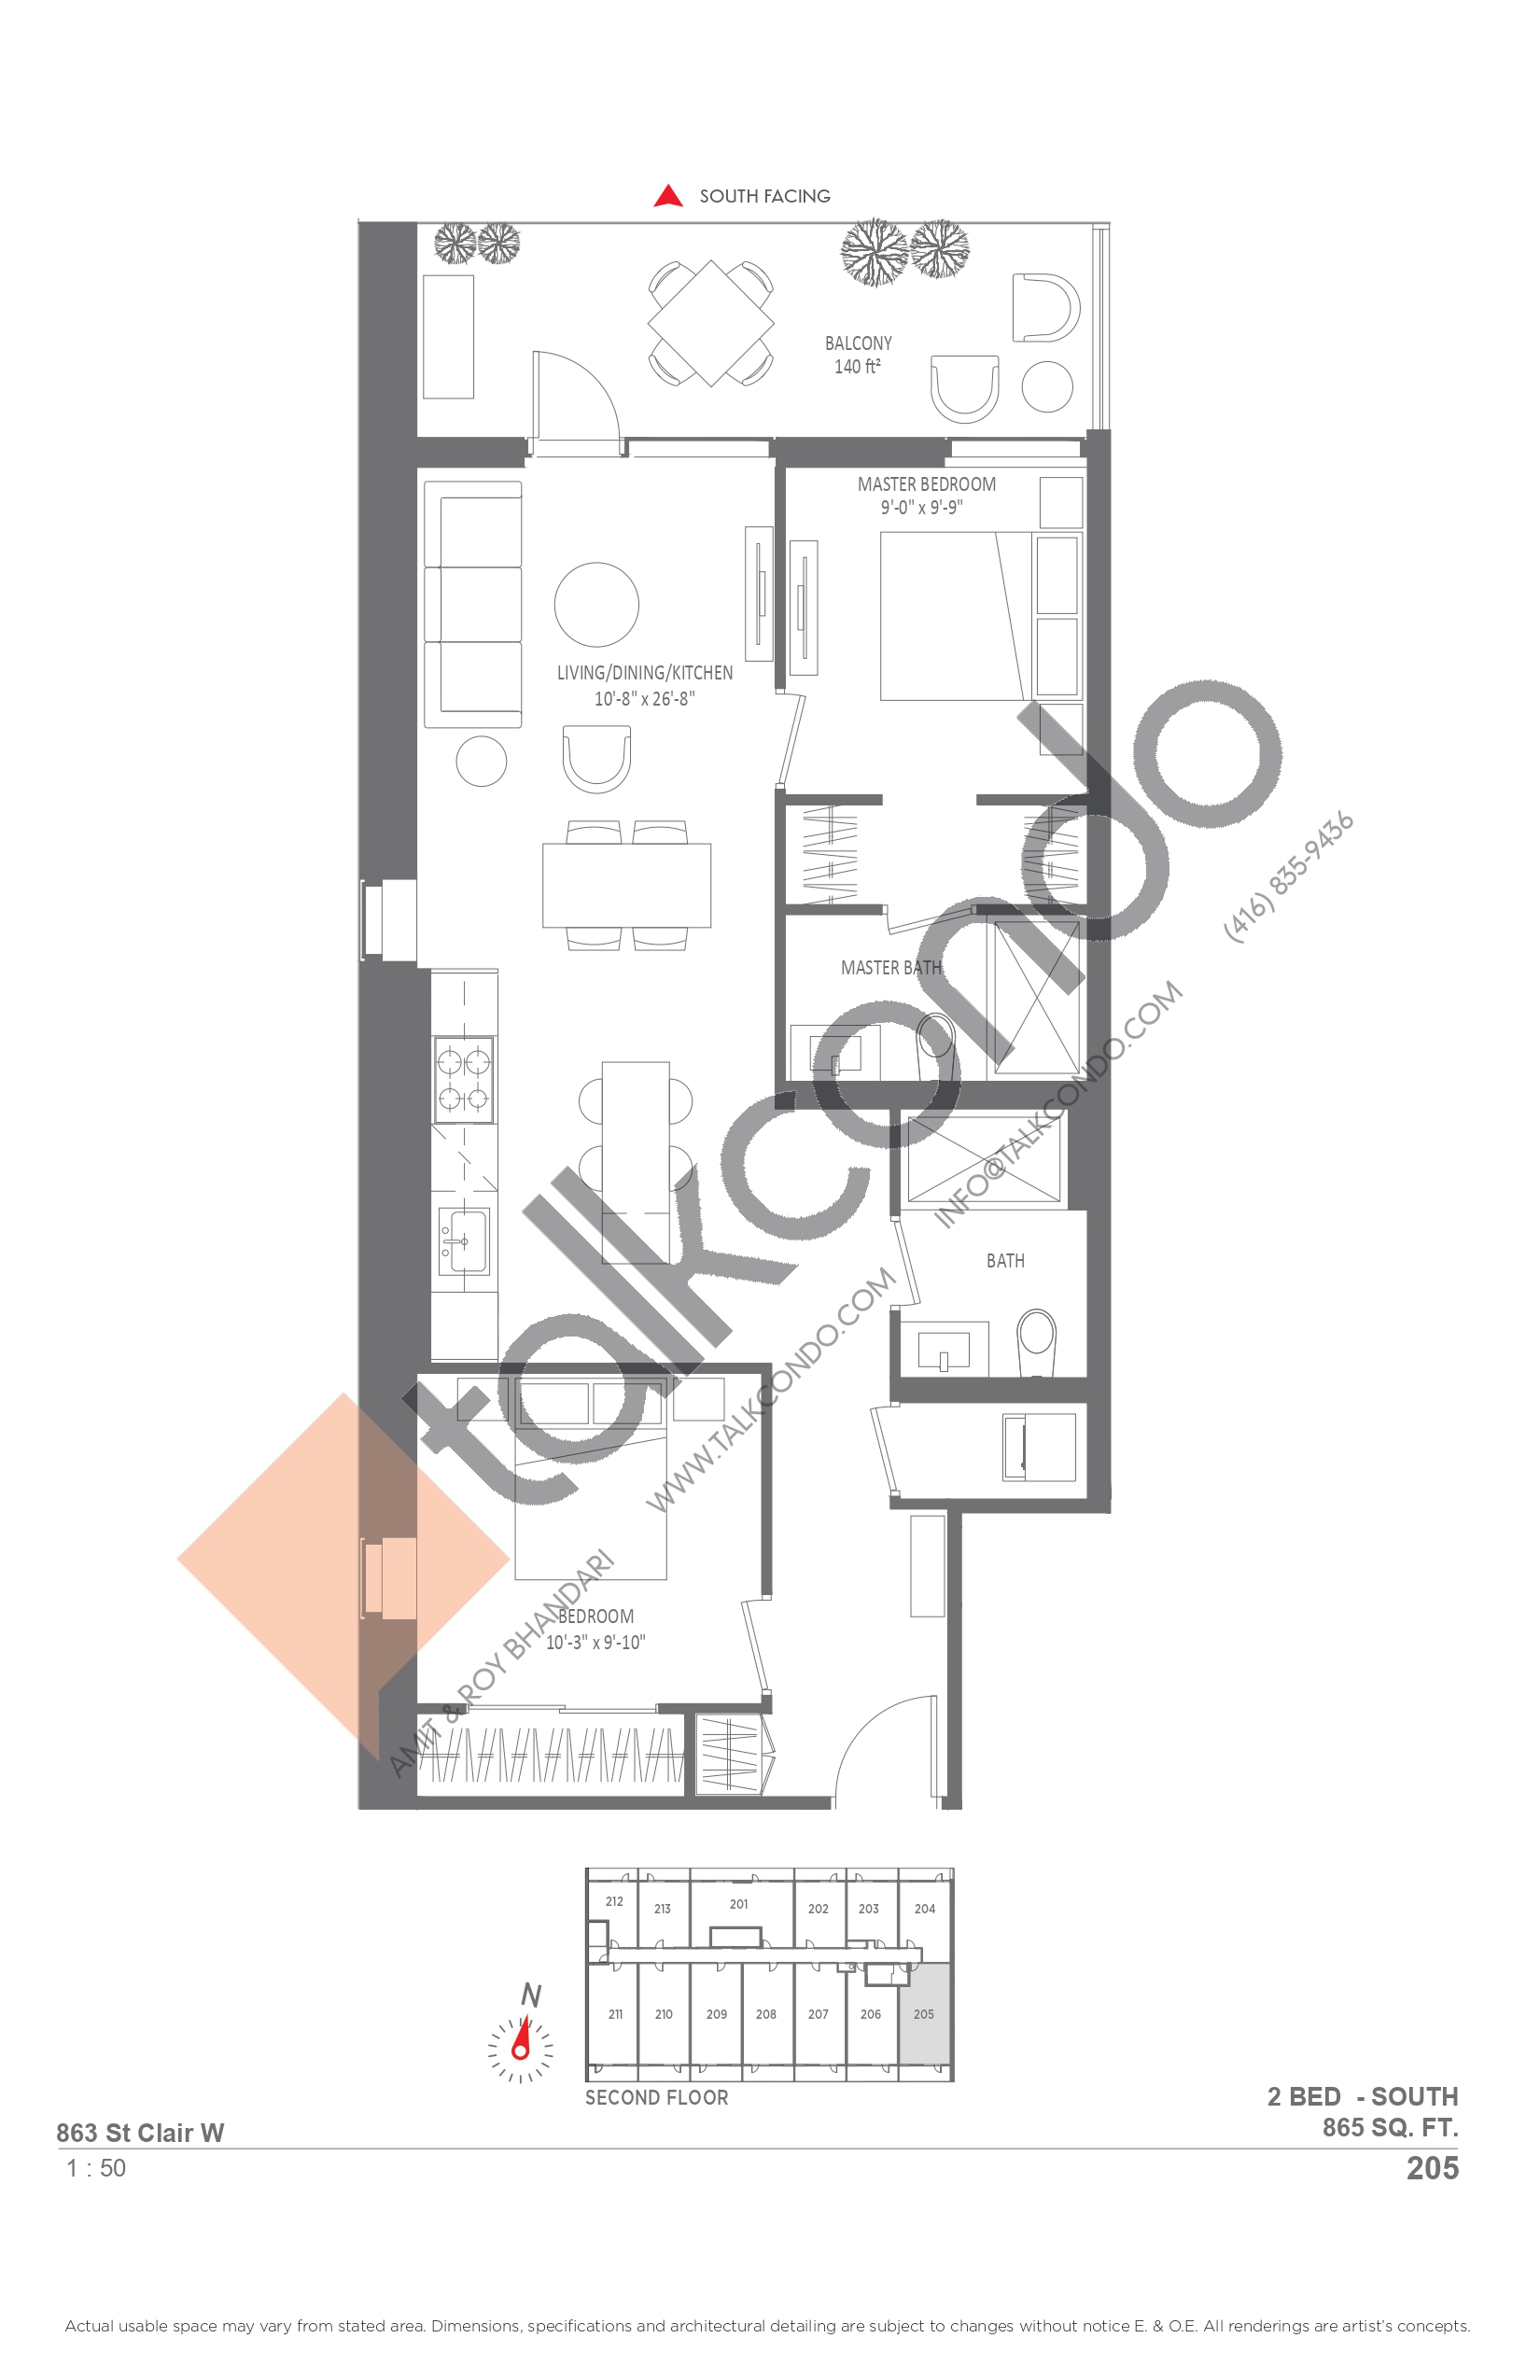 205 Floor Plan at Monza Condos - 865 sq.ft